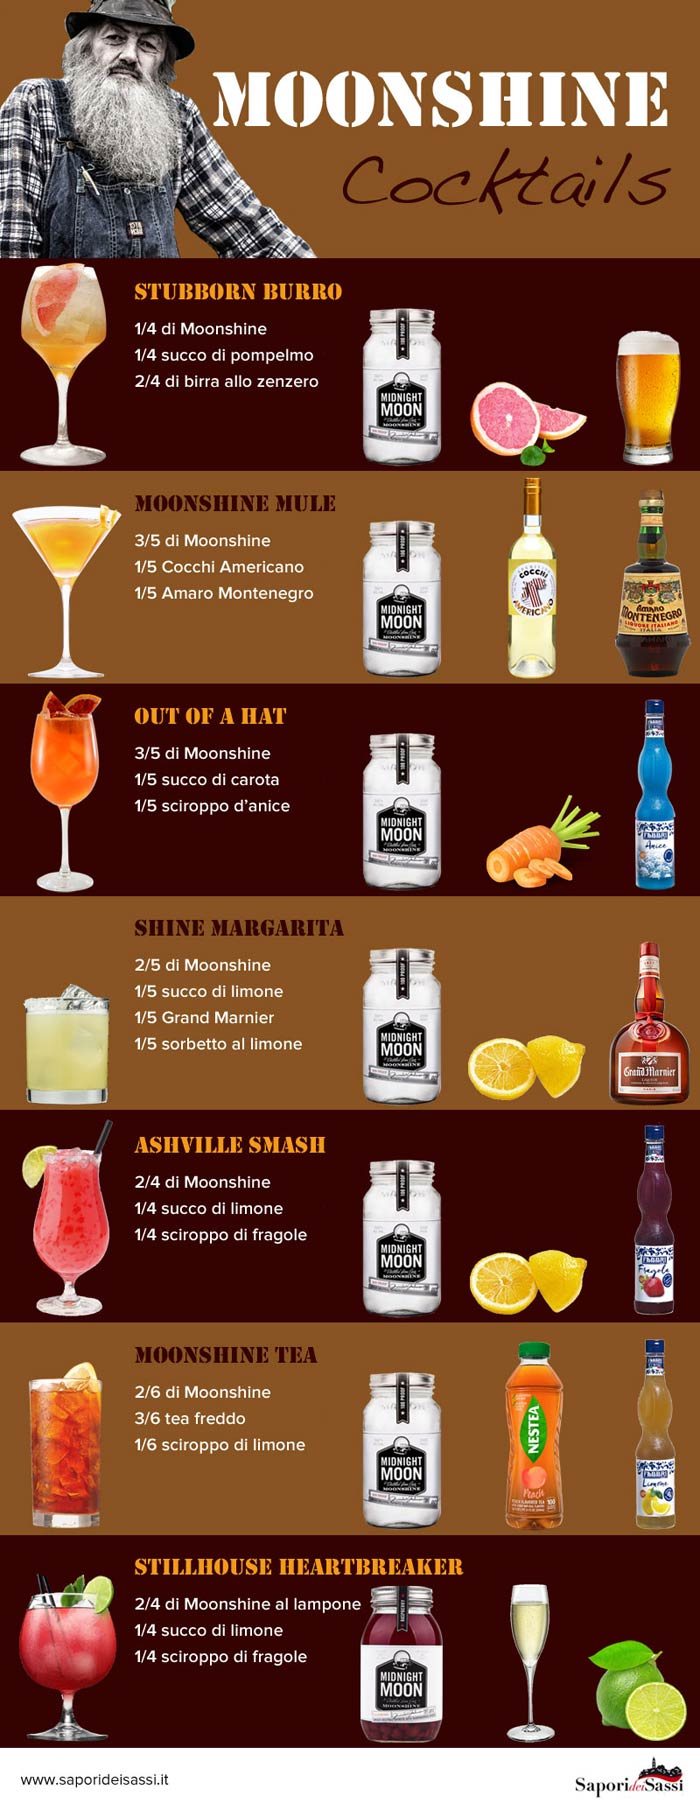 Cocktail a base di Moonshine